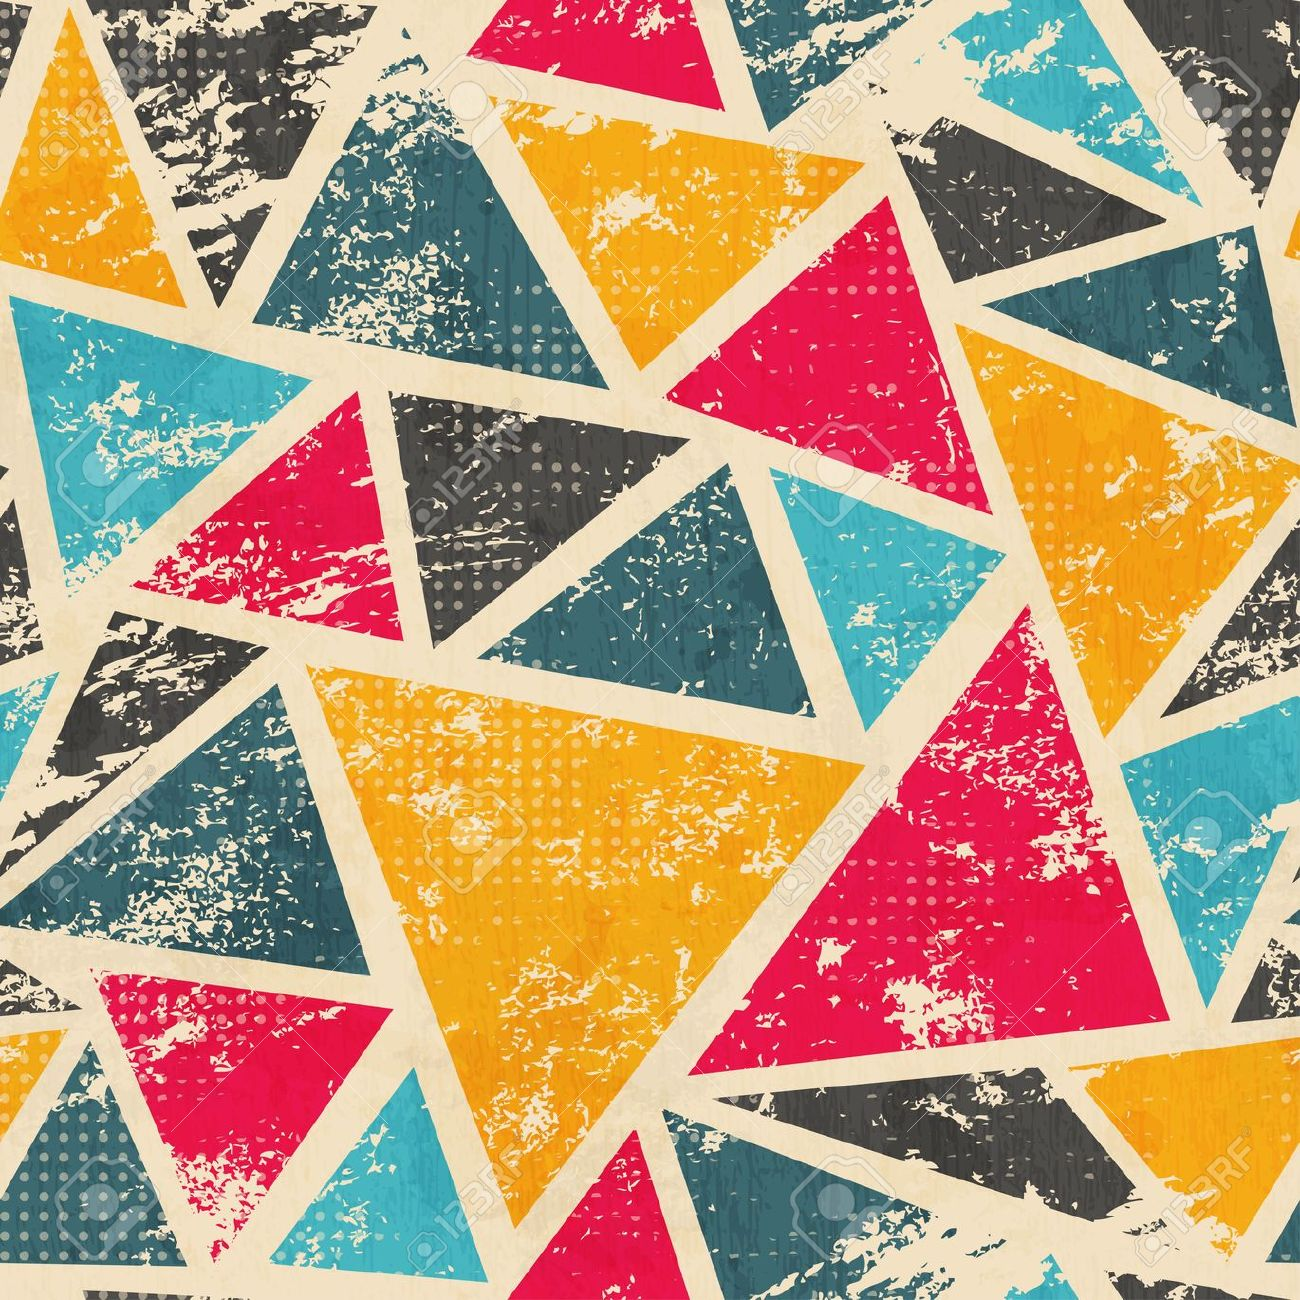 30 Grunge Patterns Backgrounds Textures